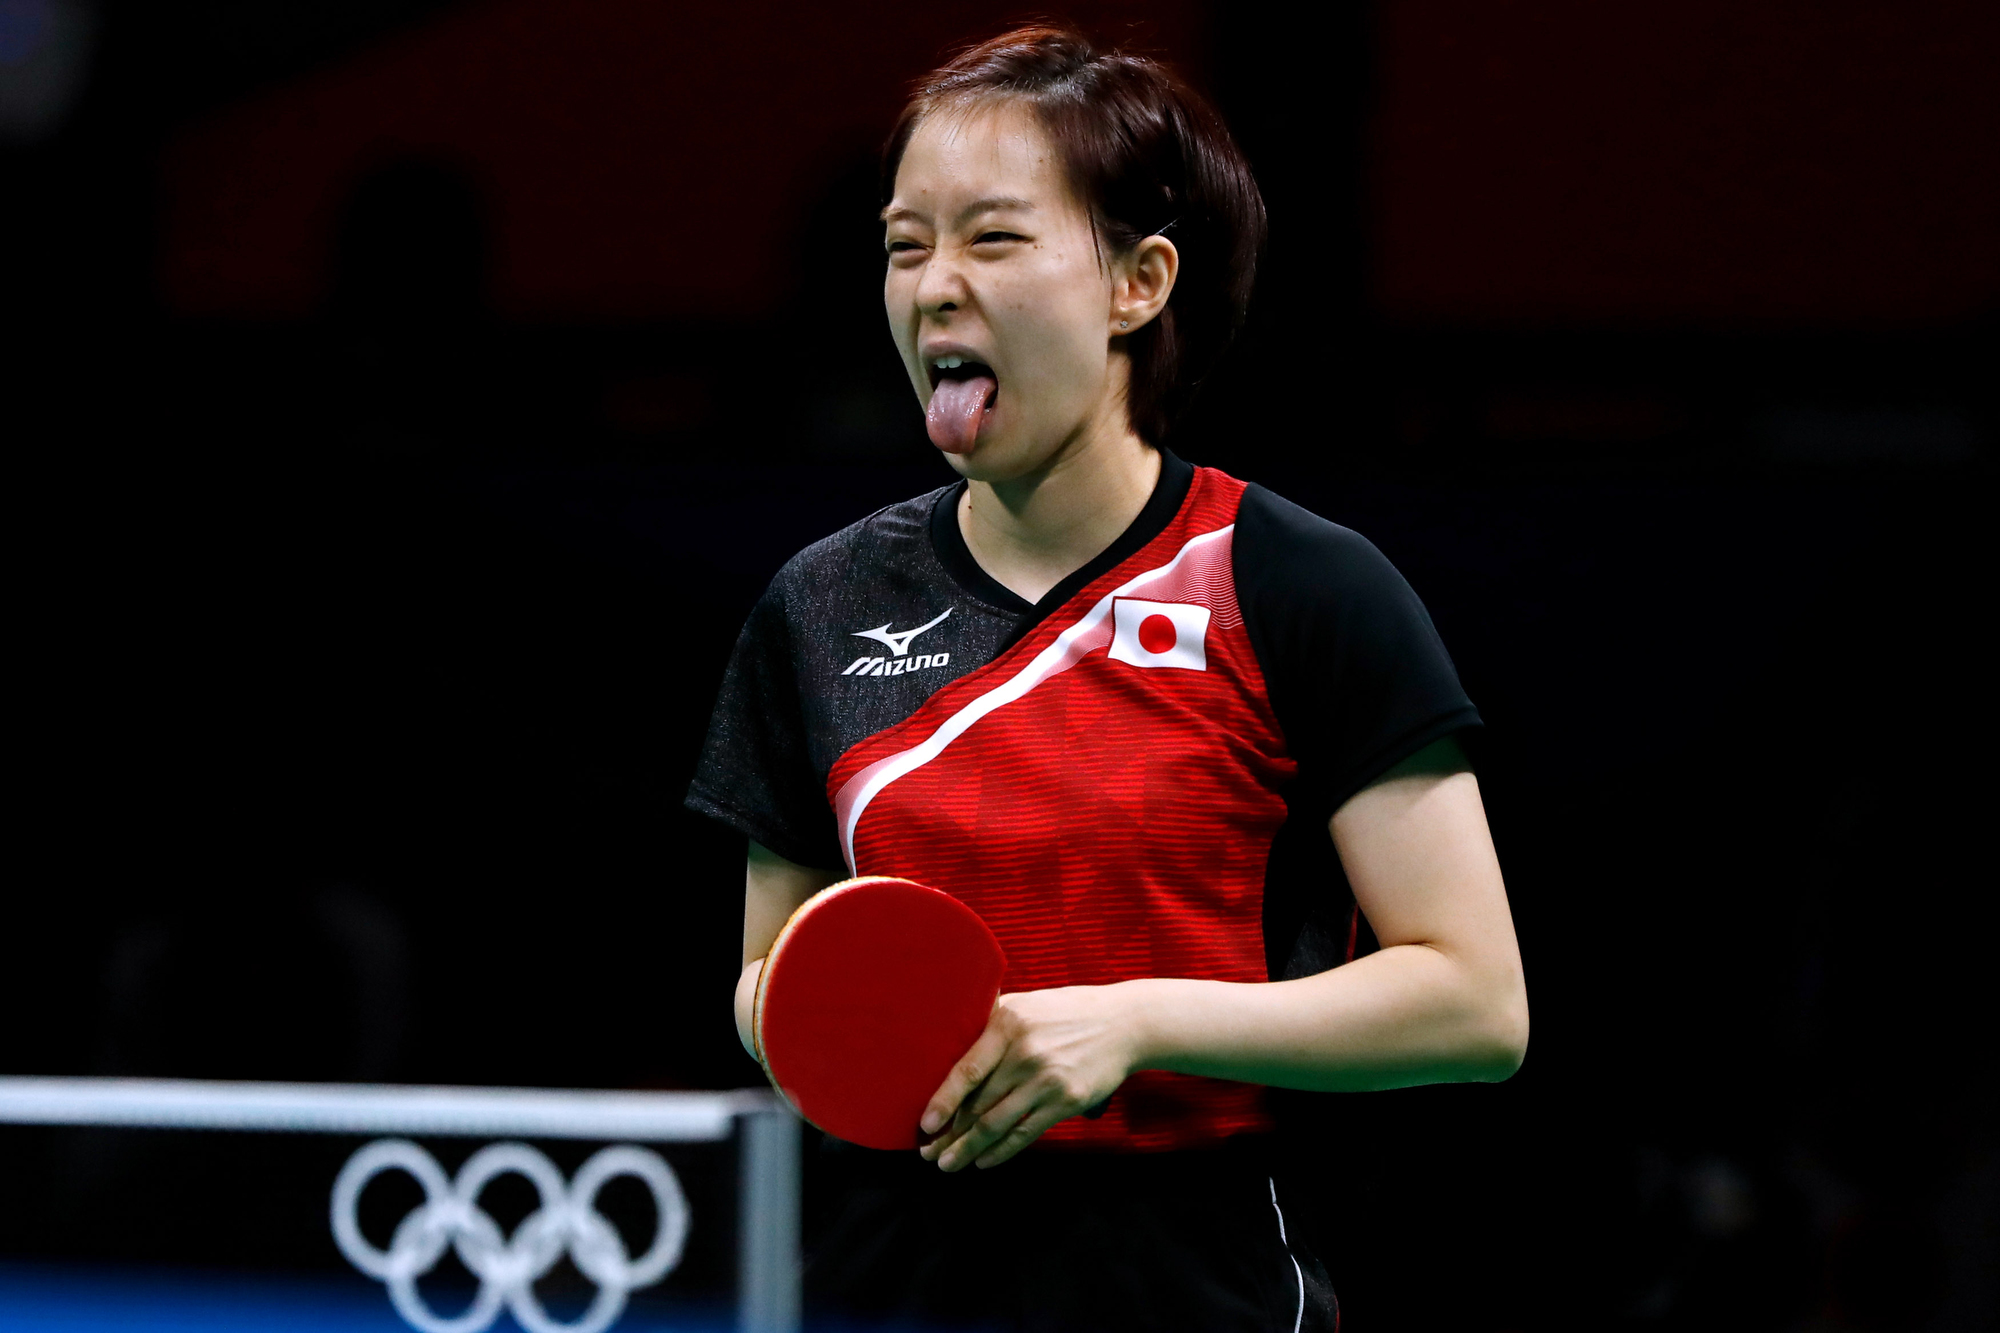 Japan's Kasumi Ishikawa reacts during a match against Singapore's Tianwei Feng in the Women's Team Table Tennis bronze medal match in Riocentro Pavilion 3 at the 2016 Rio Summer Olympics in Rio de Janeiro, Brazil, on August 16, 2016. Japan clinched the bronze in four matches.